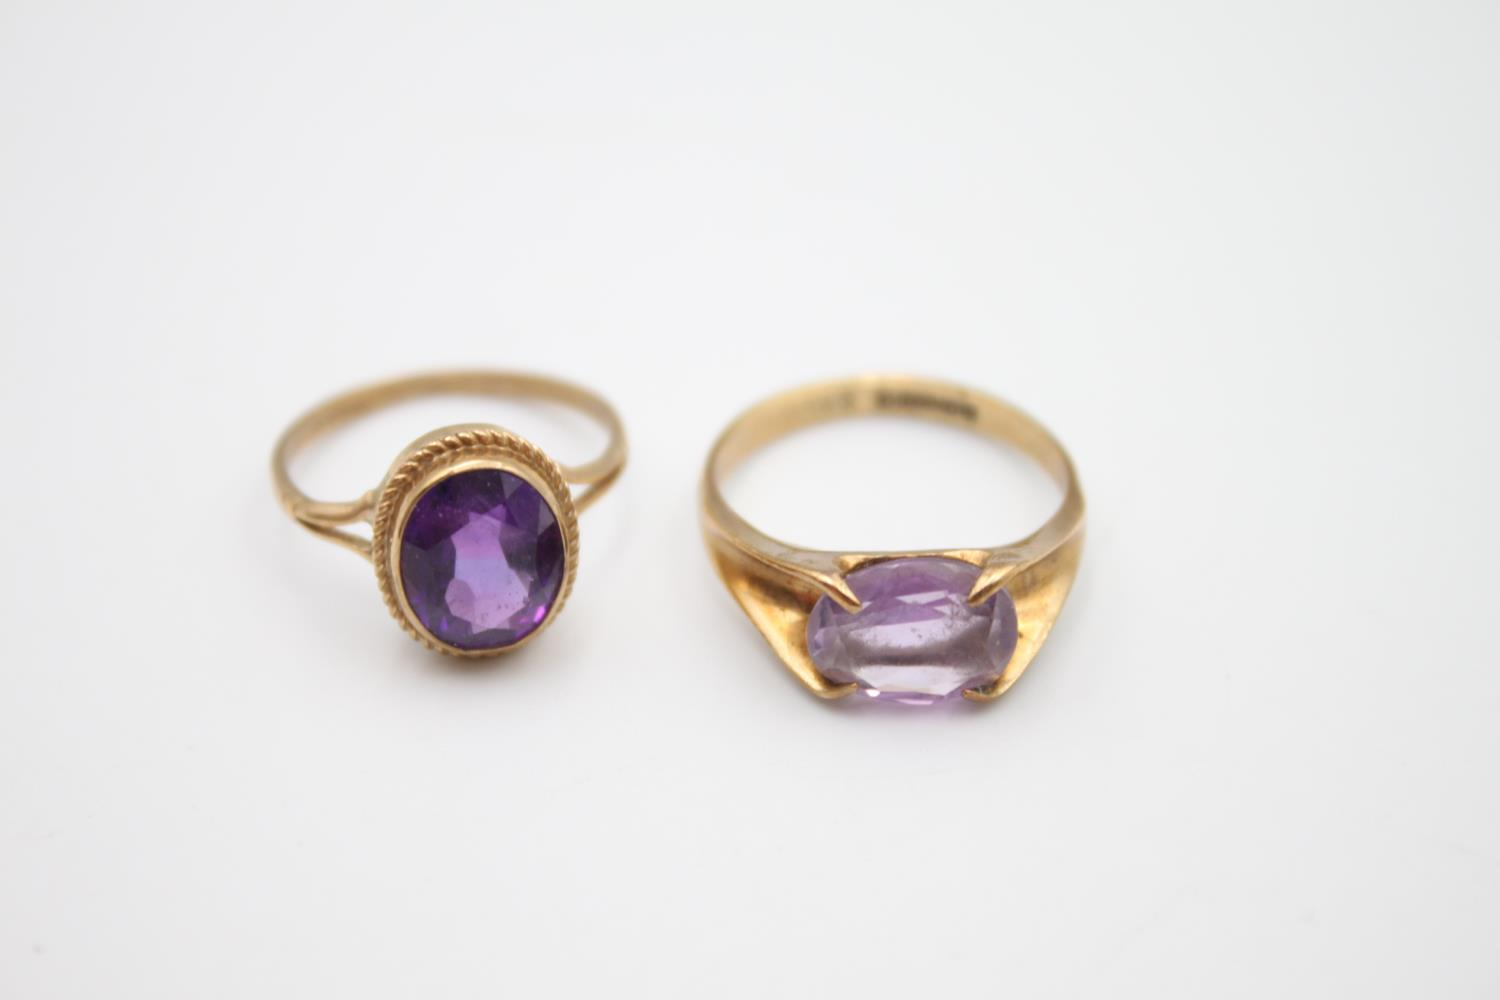 2 x 9ct gold amethyst rings inc modernist, solitaire 4.6g Size L & N